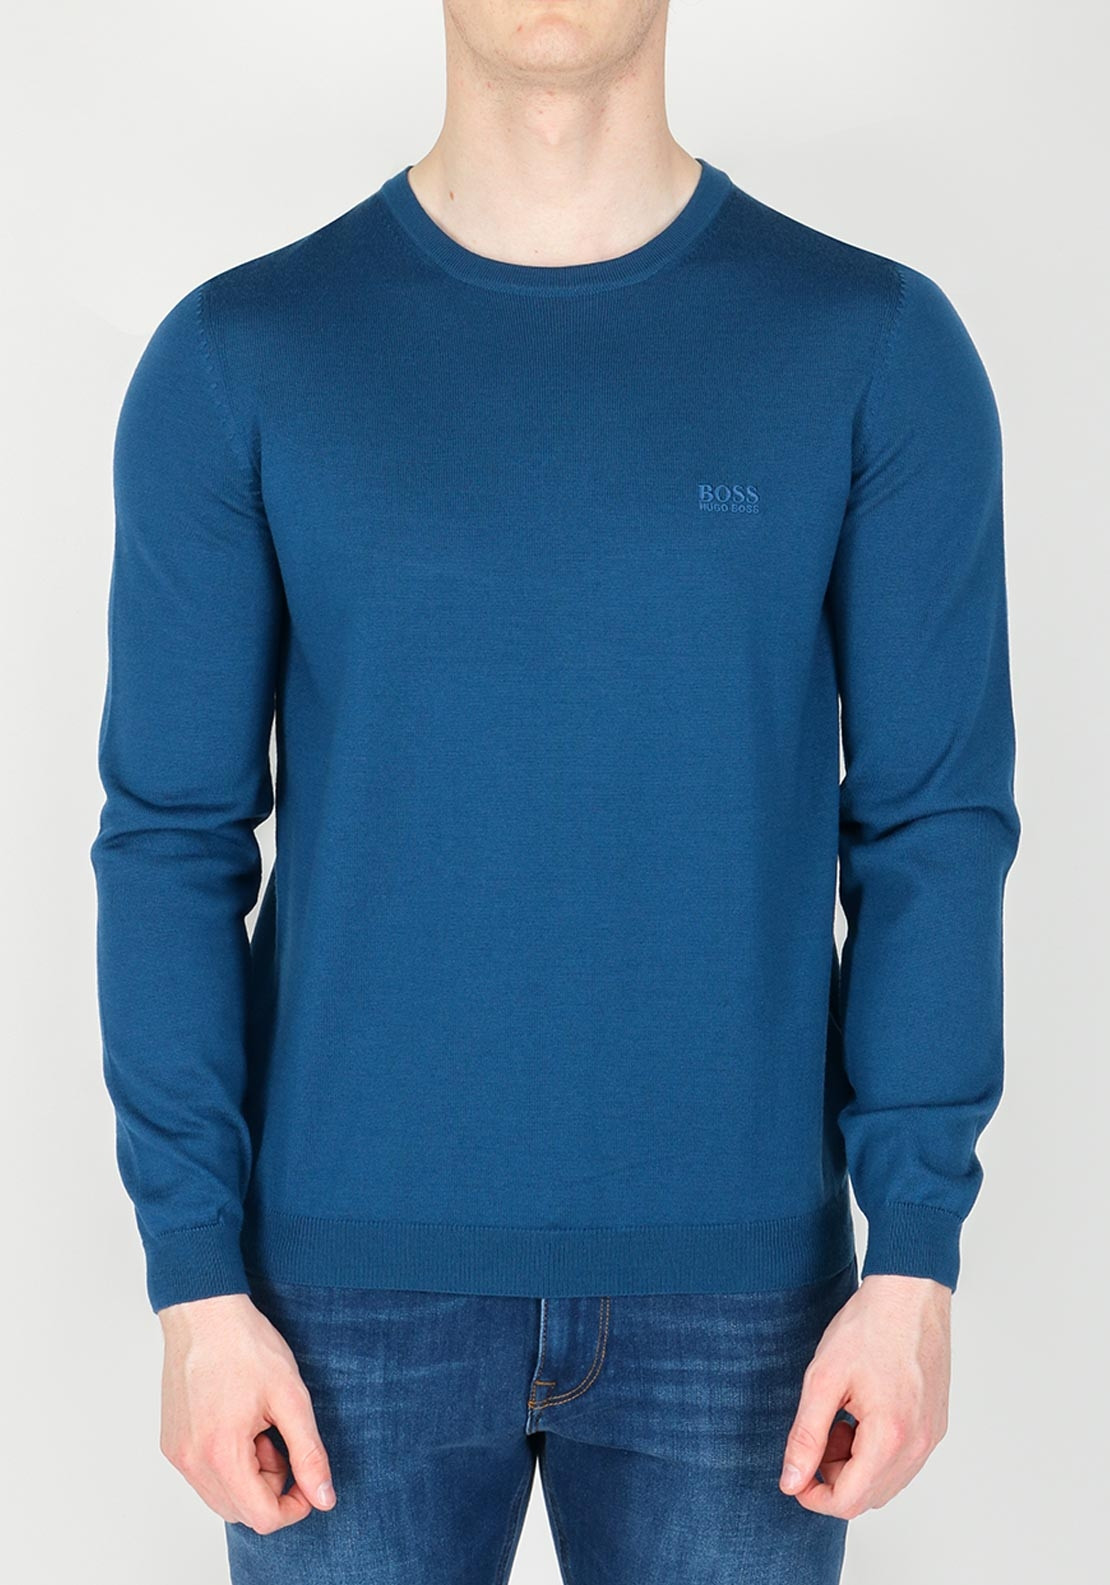 3ad6a7ca1 Hugo Boss Men's Caio Sweater Jumper, Blue. Be the first to review this  product